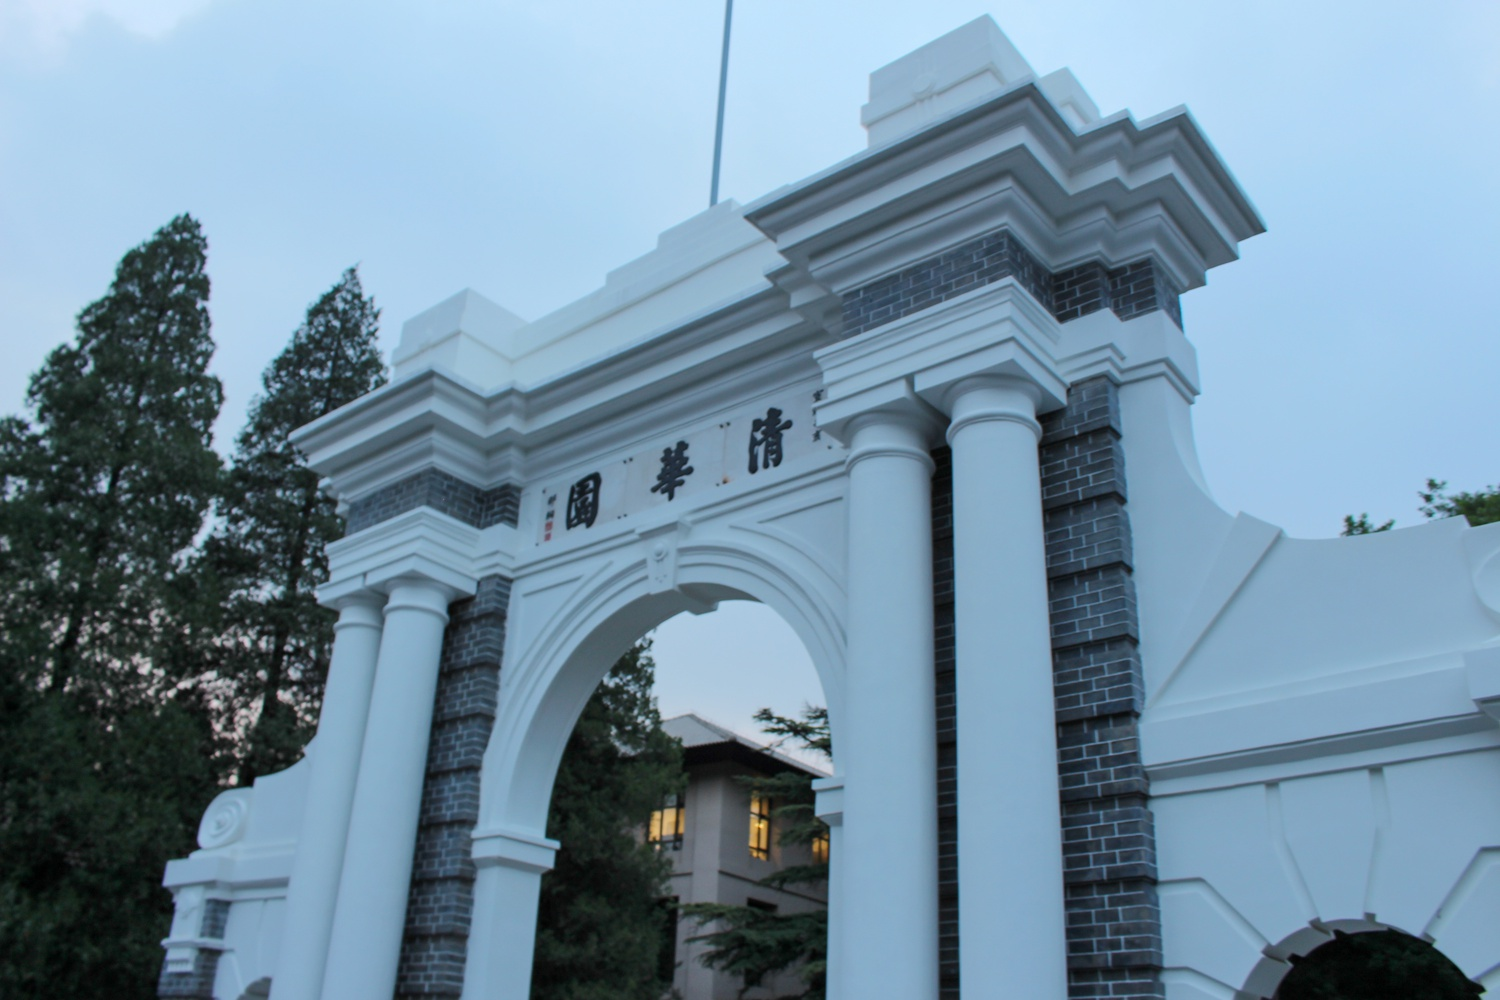 The gate at Tsinghua University in Beijing, pictured in 2019. Nine Harvard affiliates will pursue a Master's degree at Tsinghua as Schwarzman Scholarship winners this year.